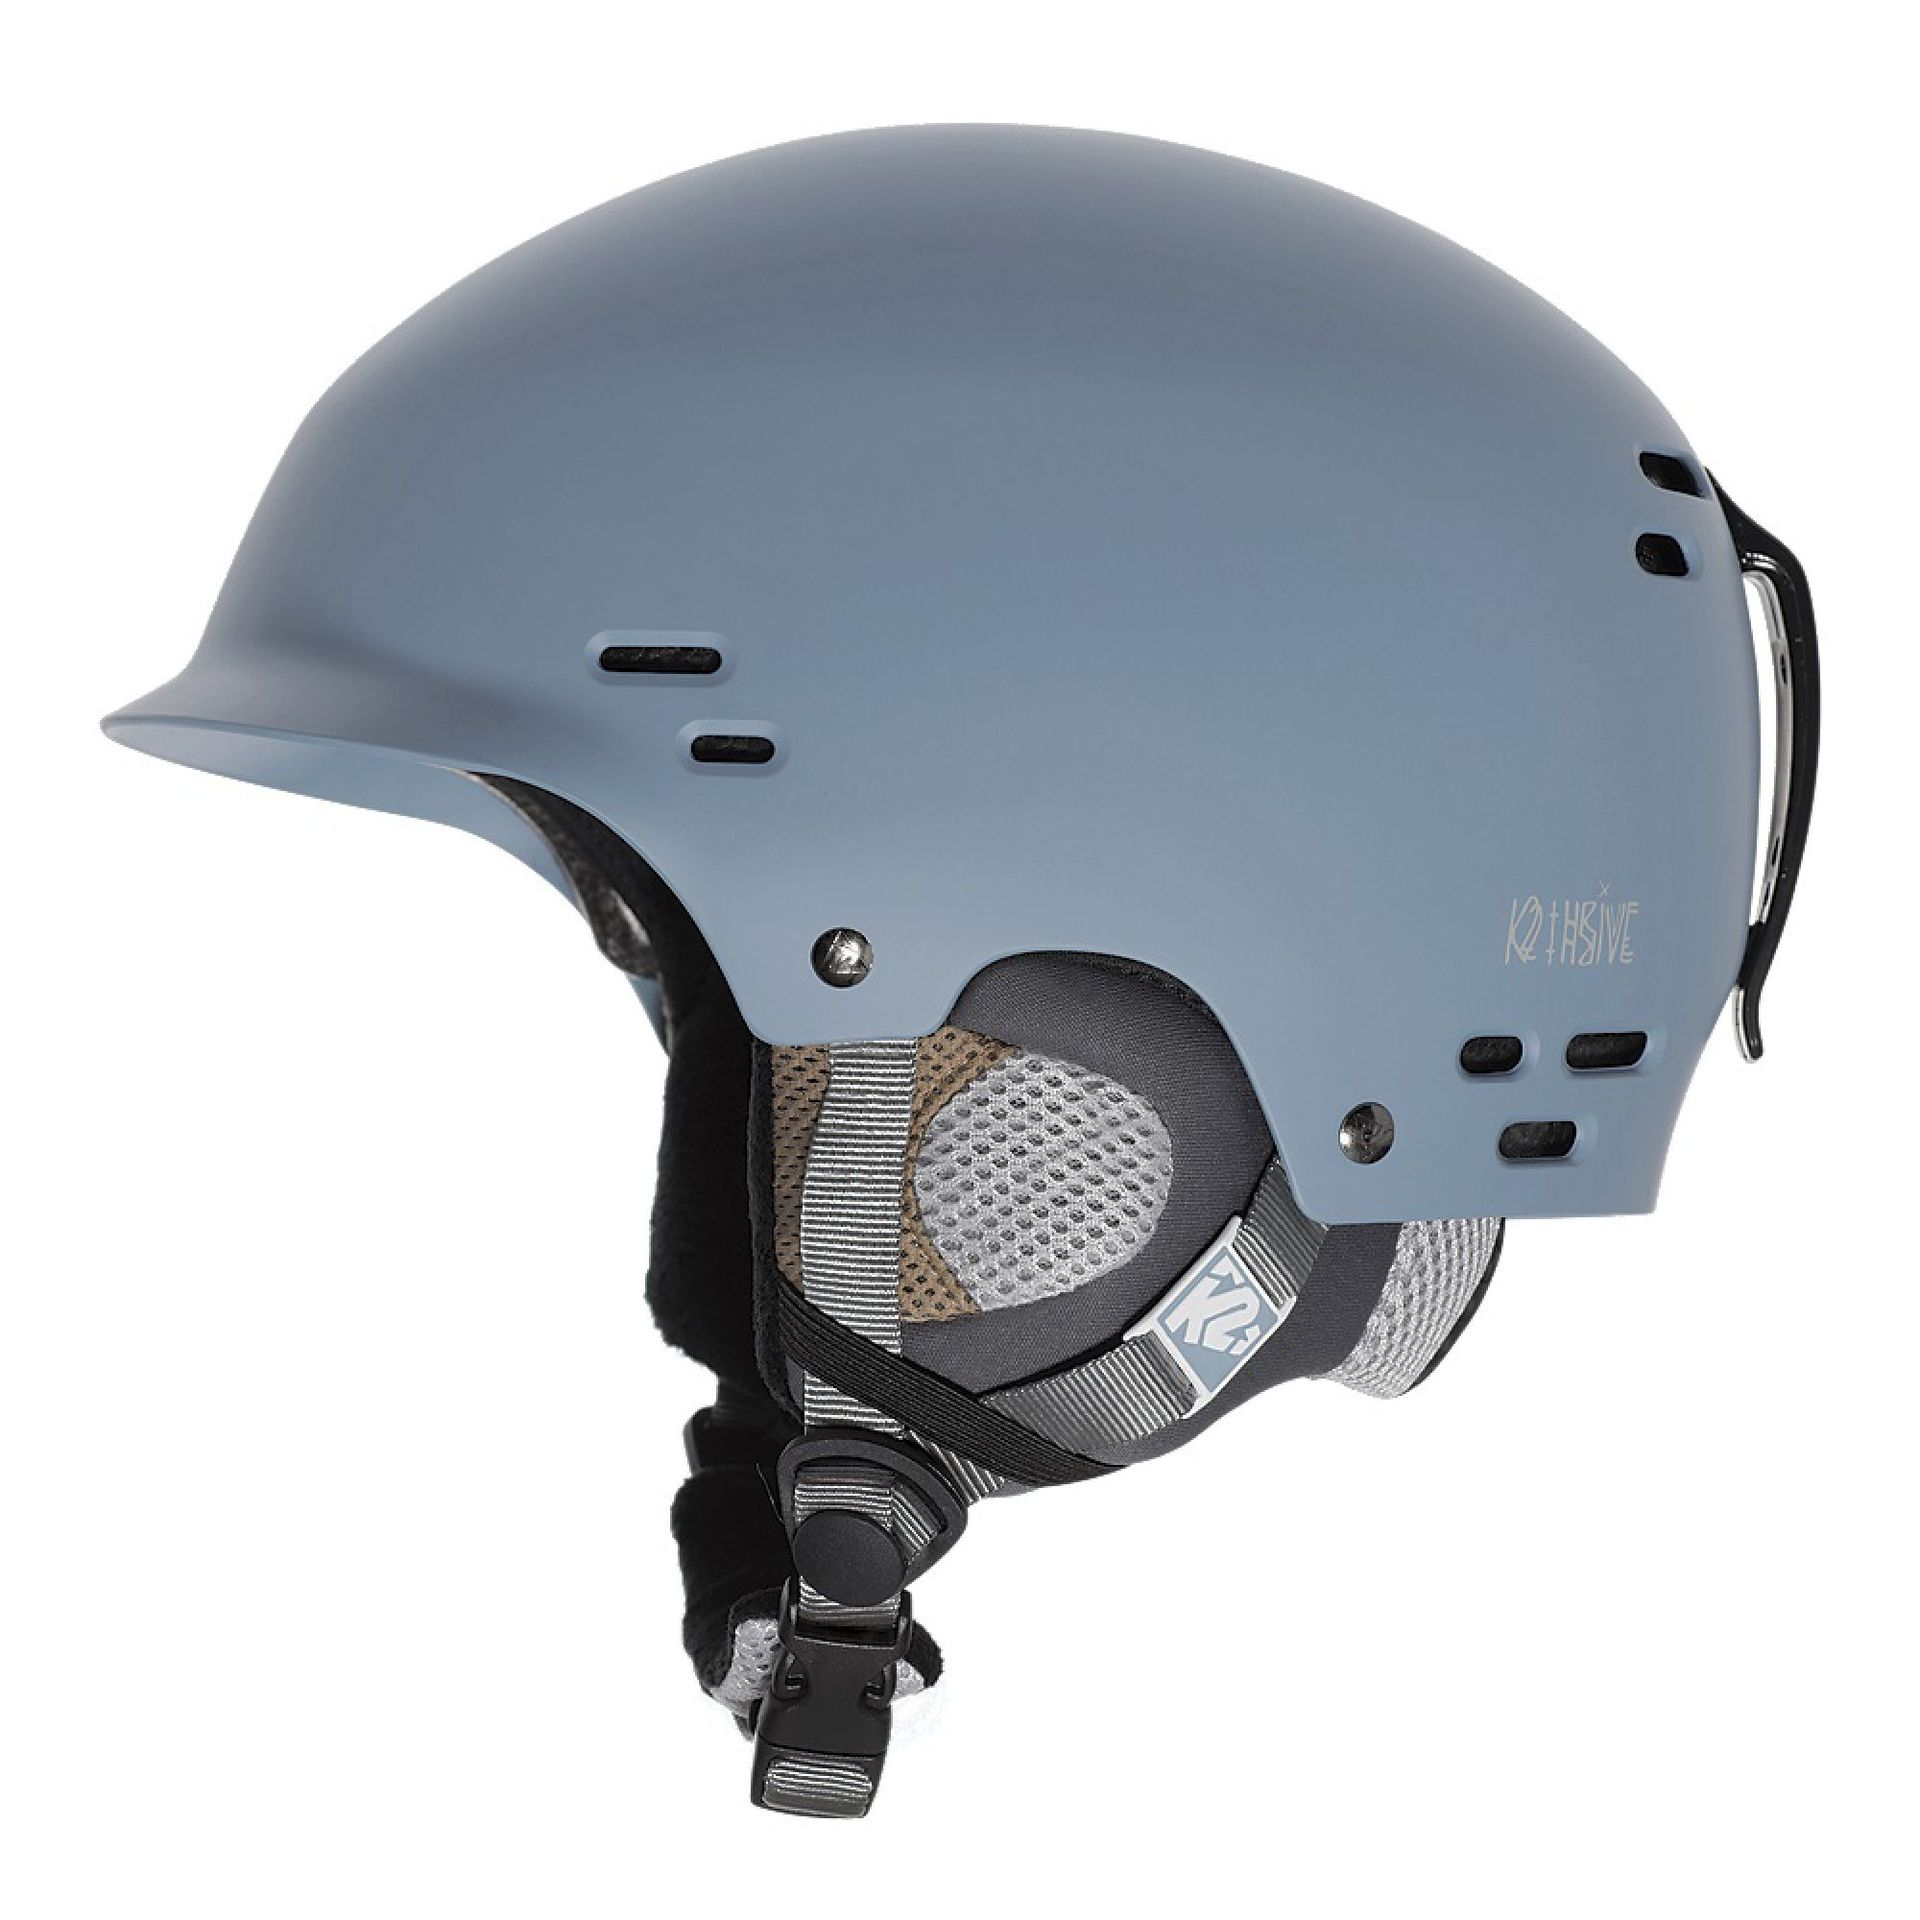 KASK K2 THRIVE STONE BLUE